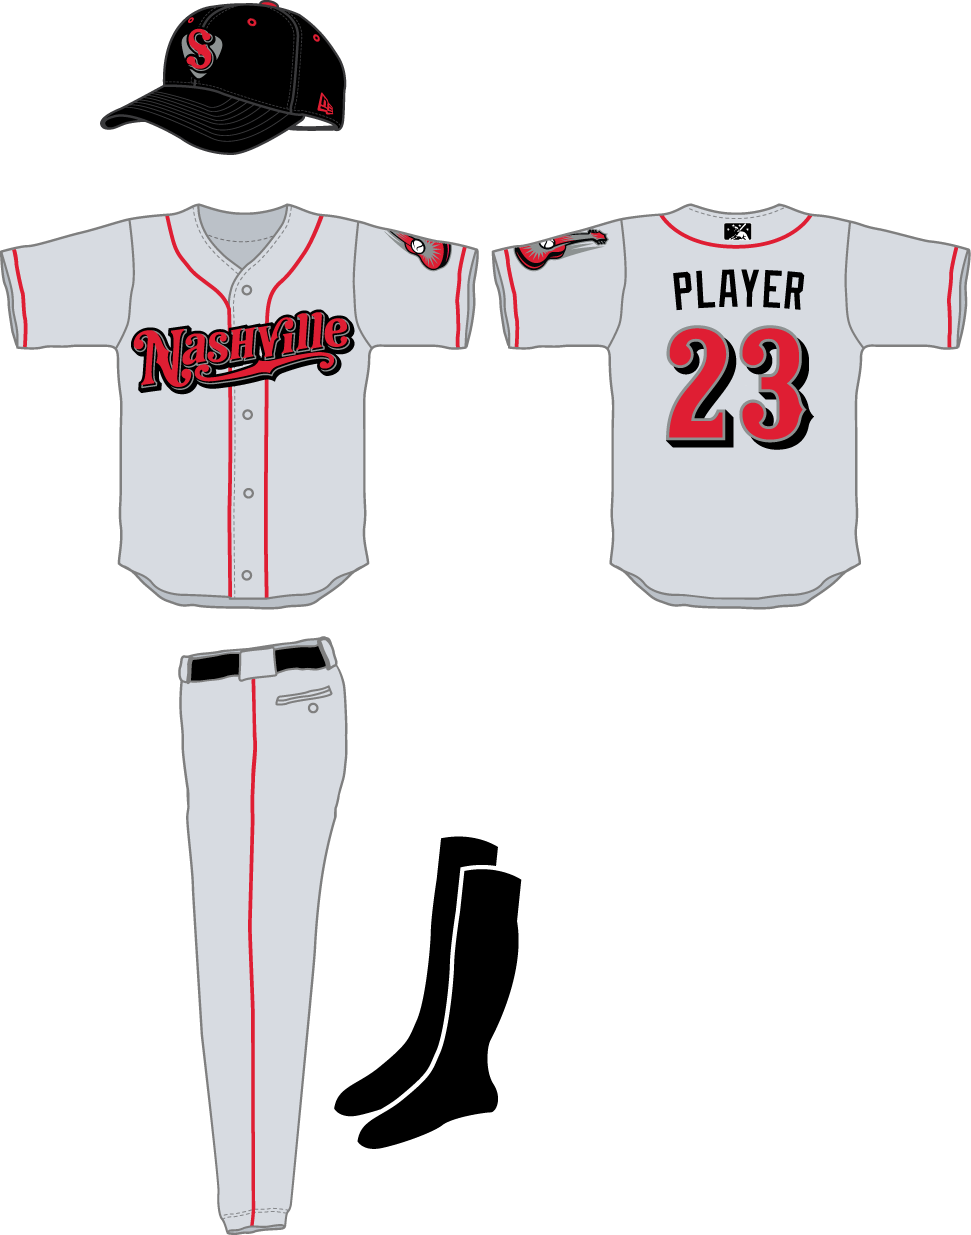 Nashville Sounds Uniform Road Uniform (2015-2018) -  SportsLogos.Net